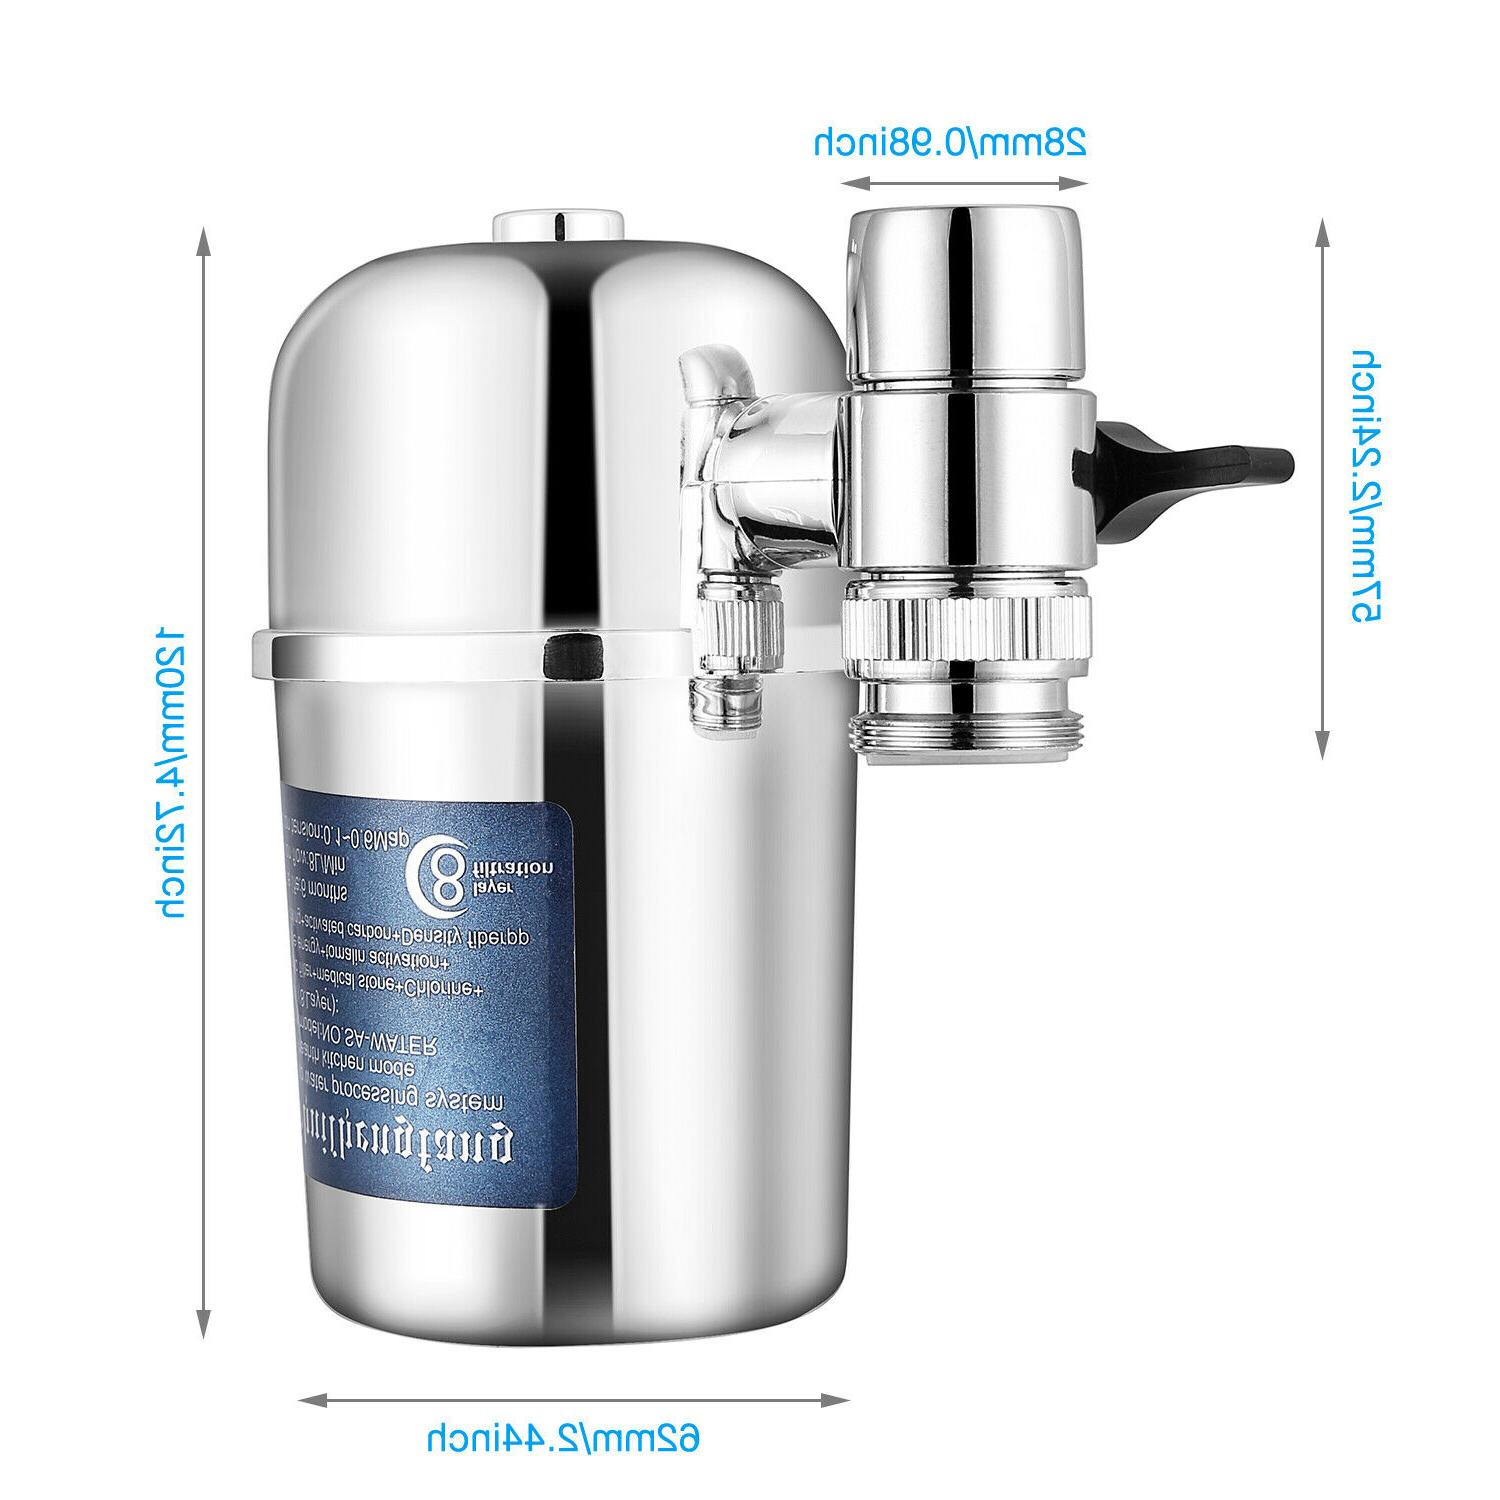 Tap Faucet System 8-Layer Mount